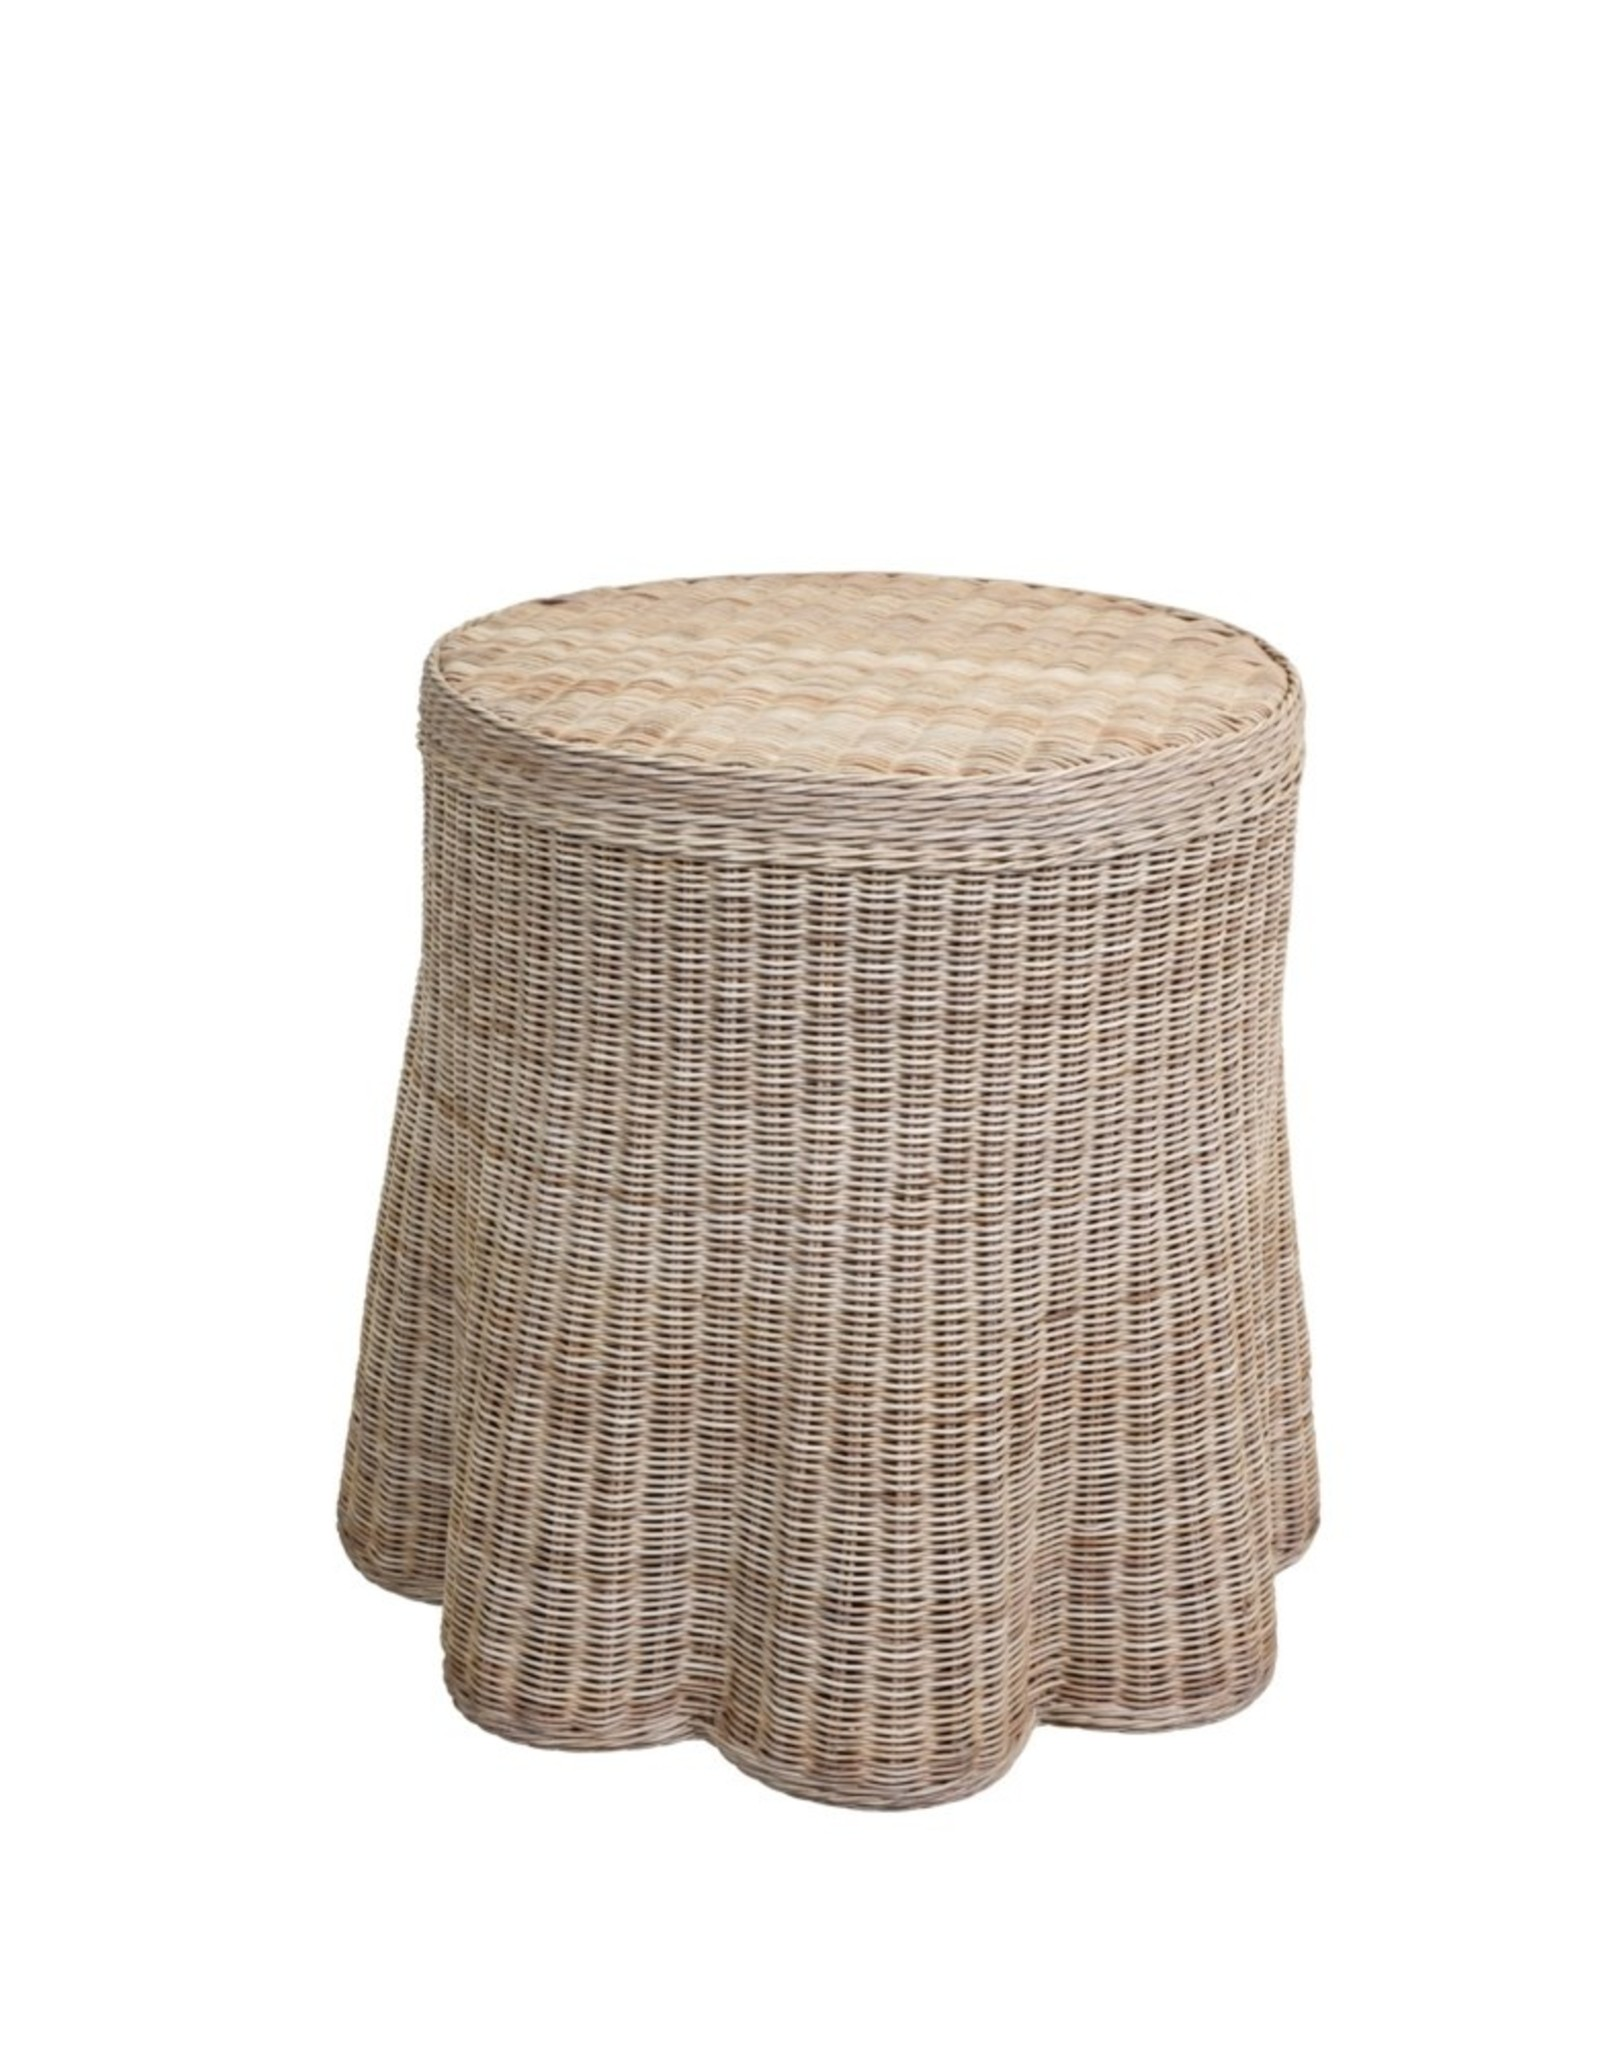 Mainly Baskets Scallop Side Table - Natural